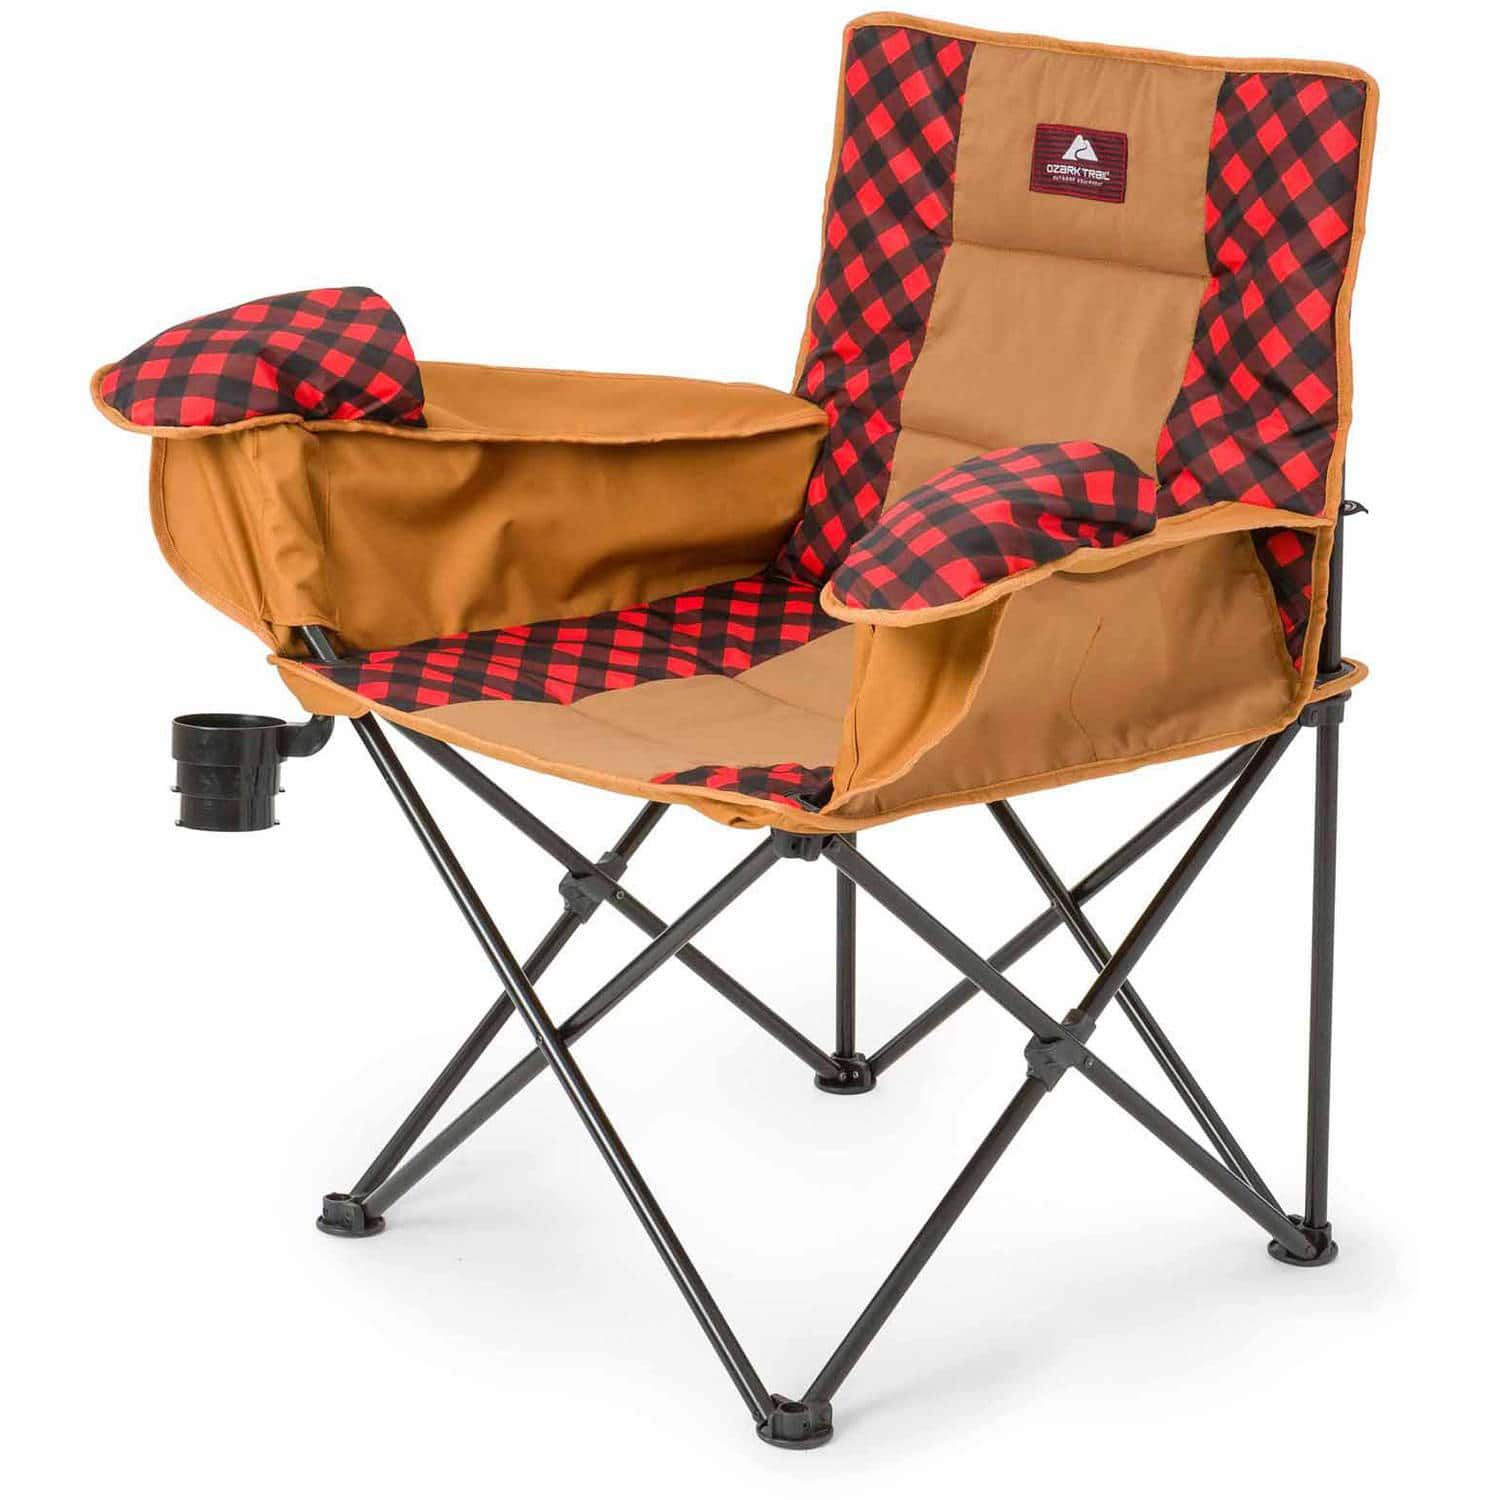 Ozark Trail Cold Weather Chair with Steel Frame $10 + Free Store Pickup